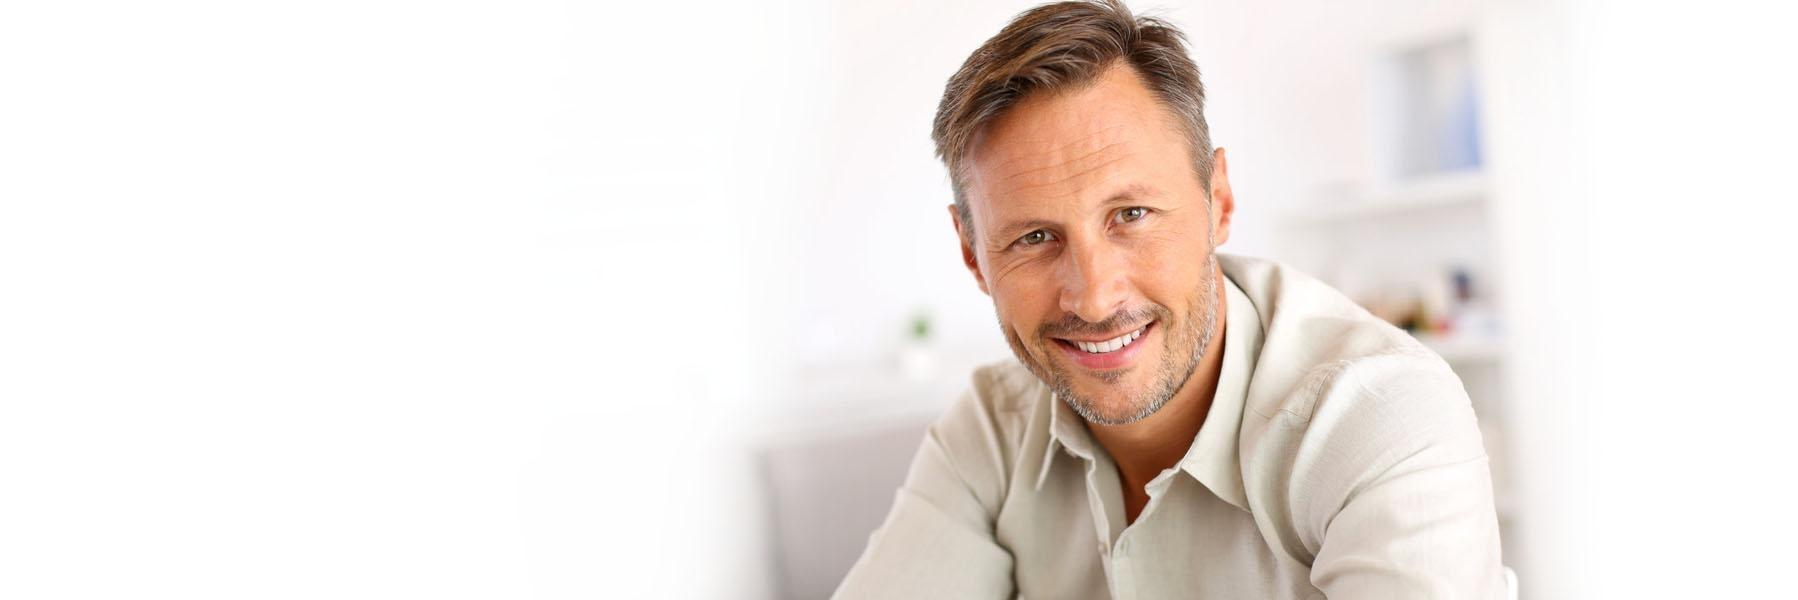 Dental Implants in Steele Creek | Harlow Dental